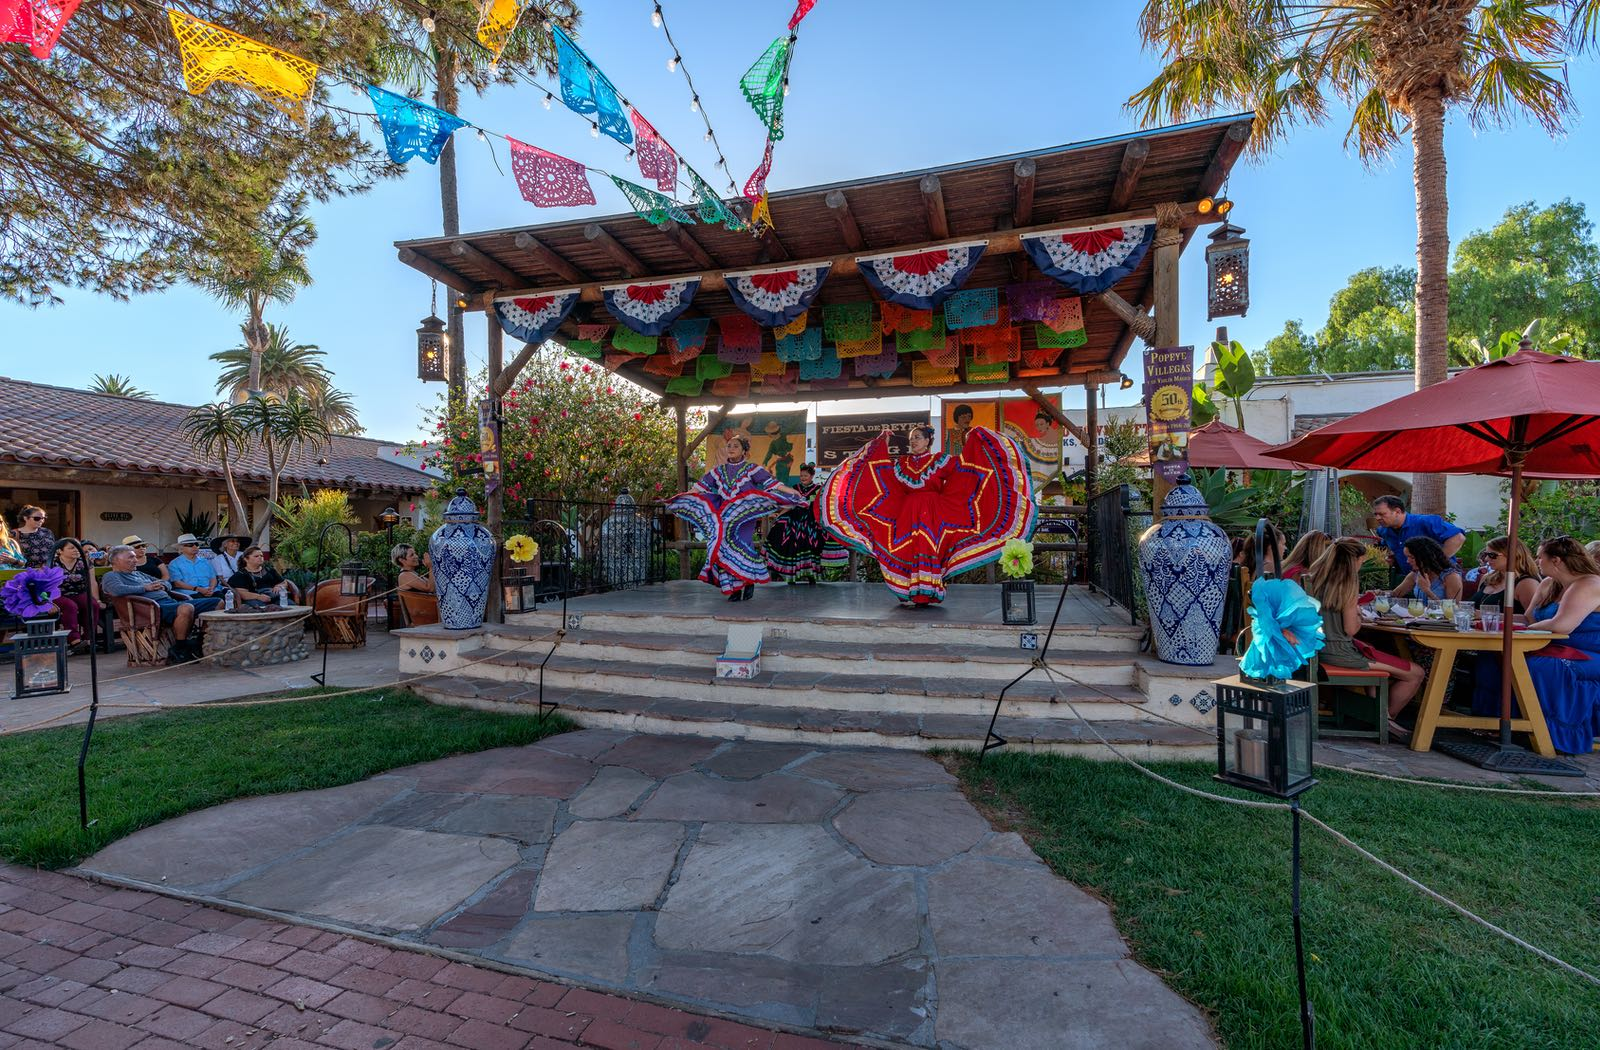 Folklorico Dancers in Old Town San Diego State Historic Park - Top Things to Do